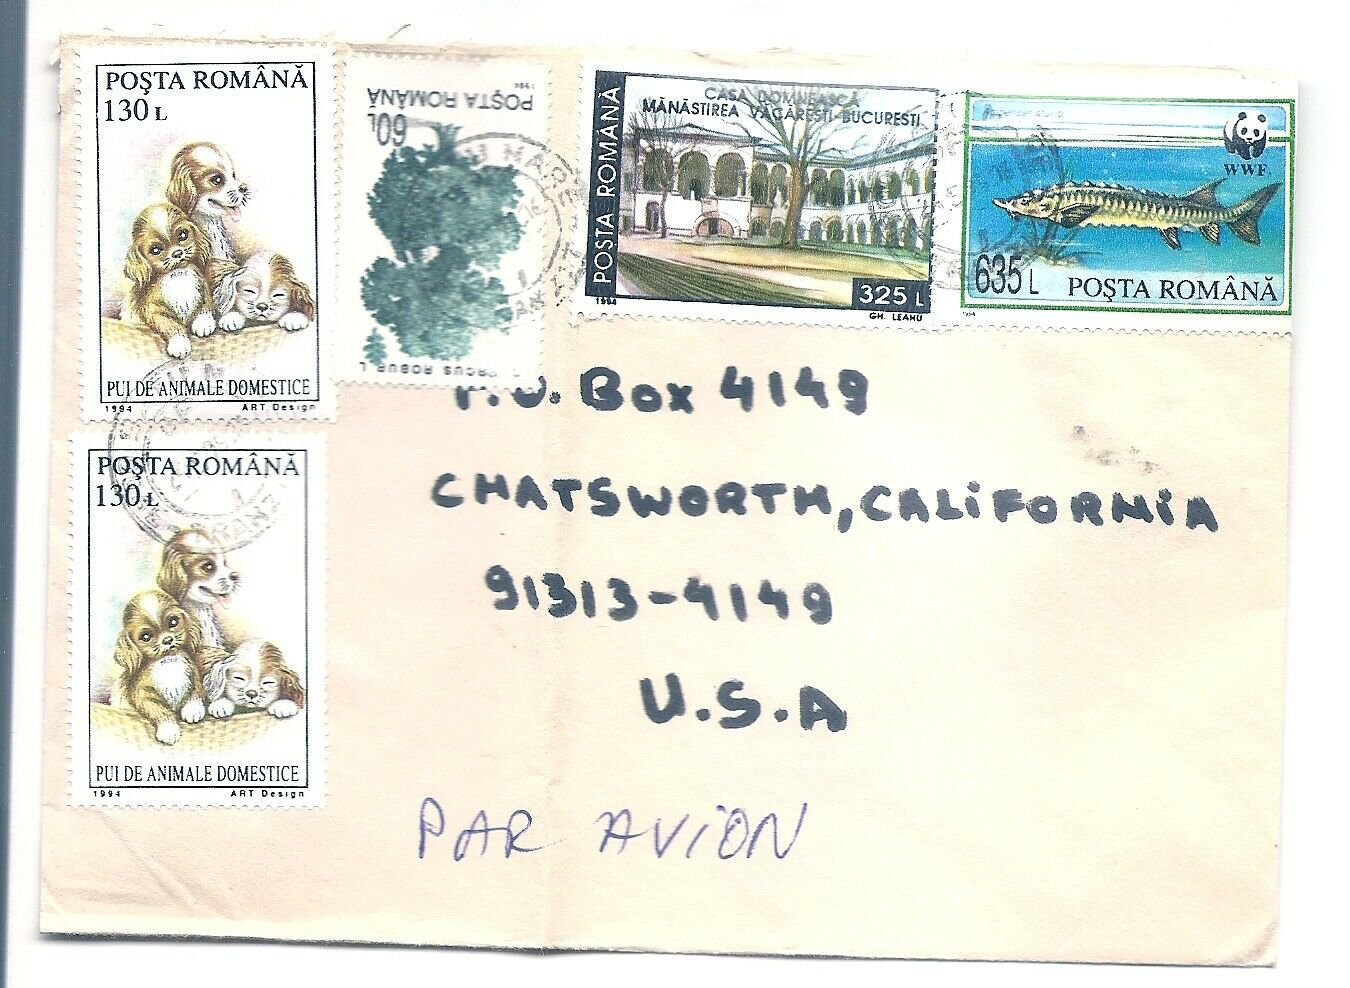 ROMANIA - 1995 Cover Multiple frankings to USA - Actor JEAN CLAUDE VAN DAMME